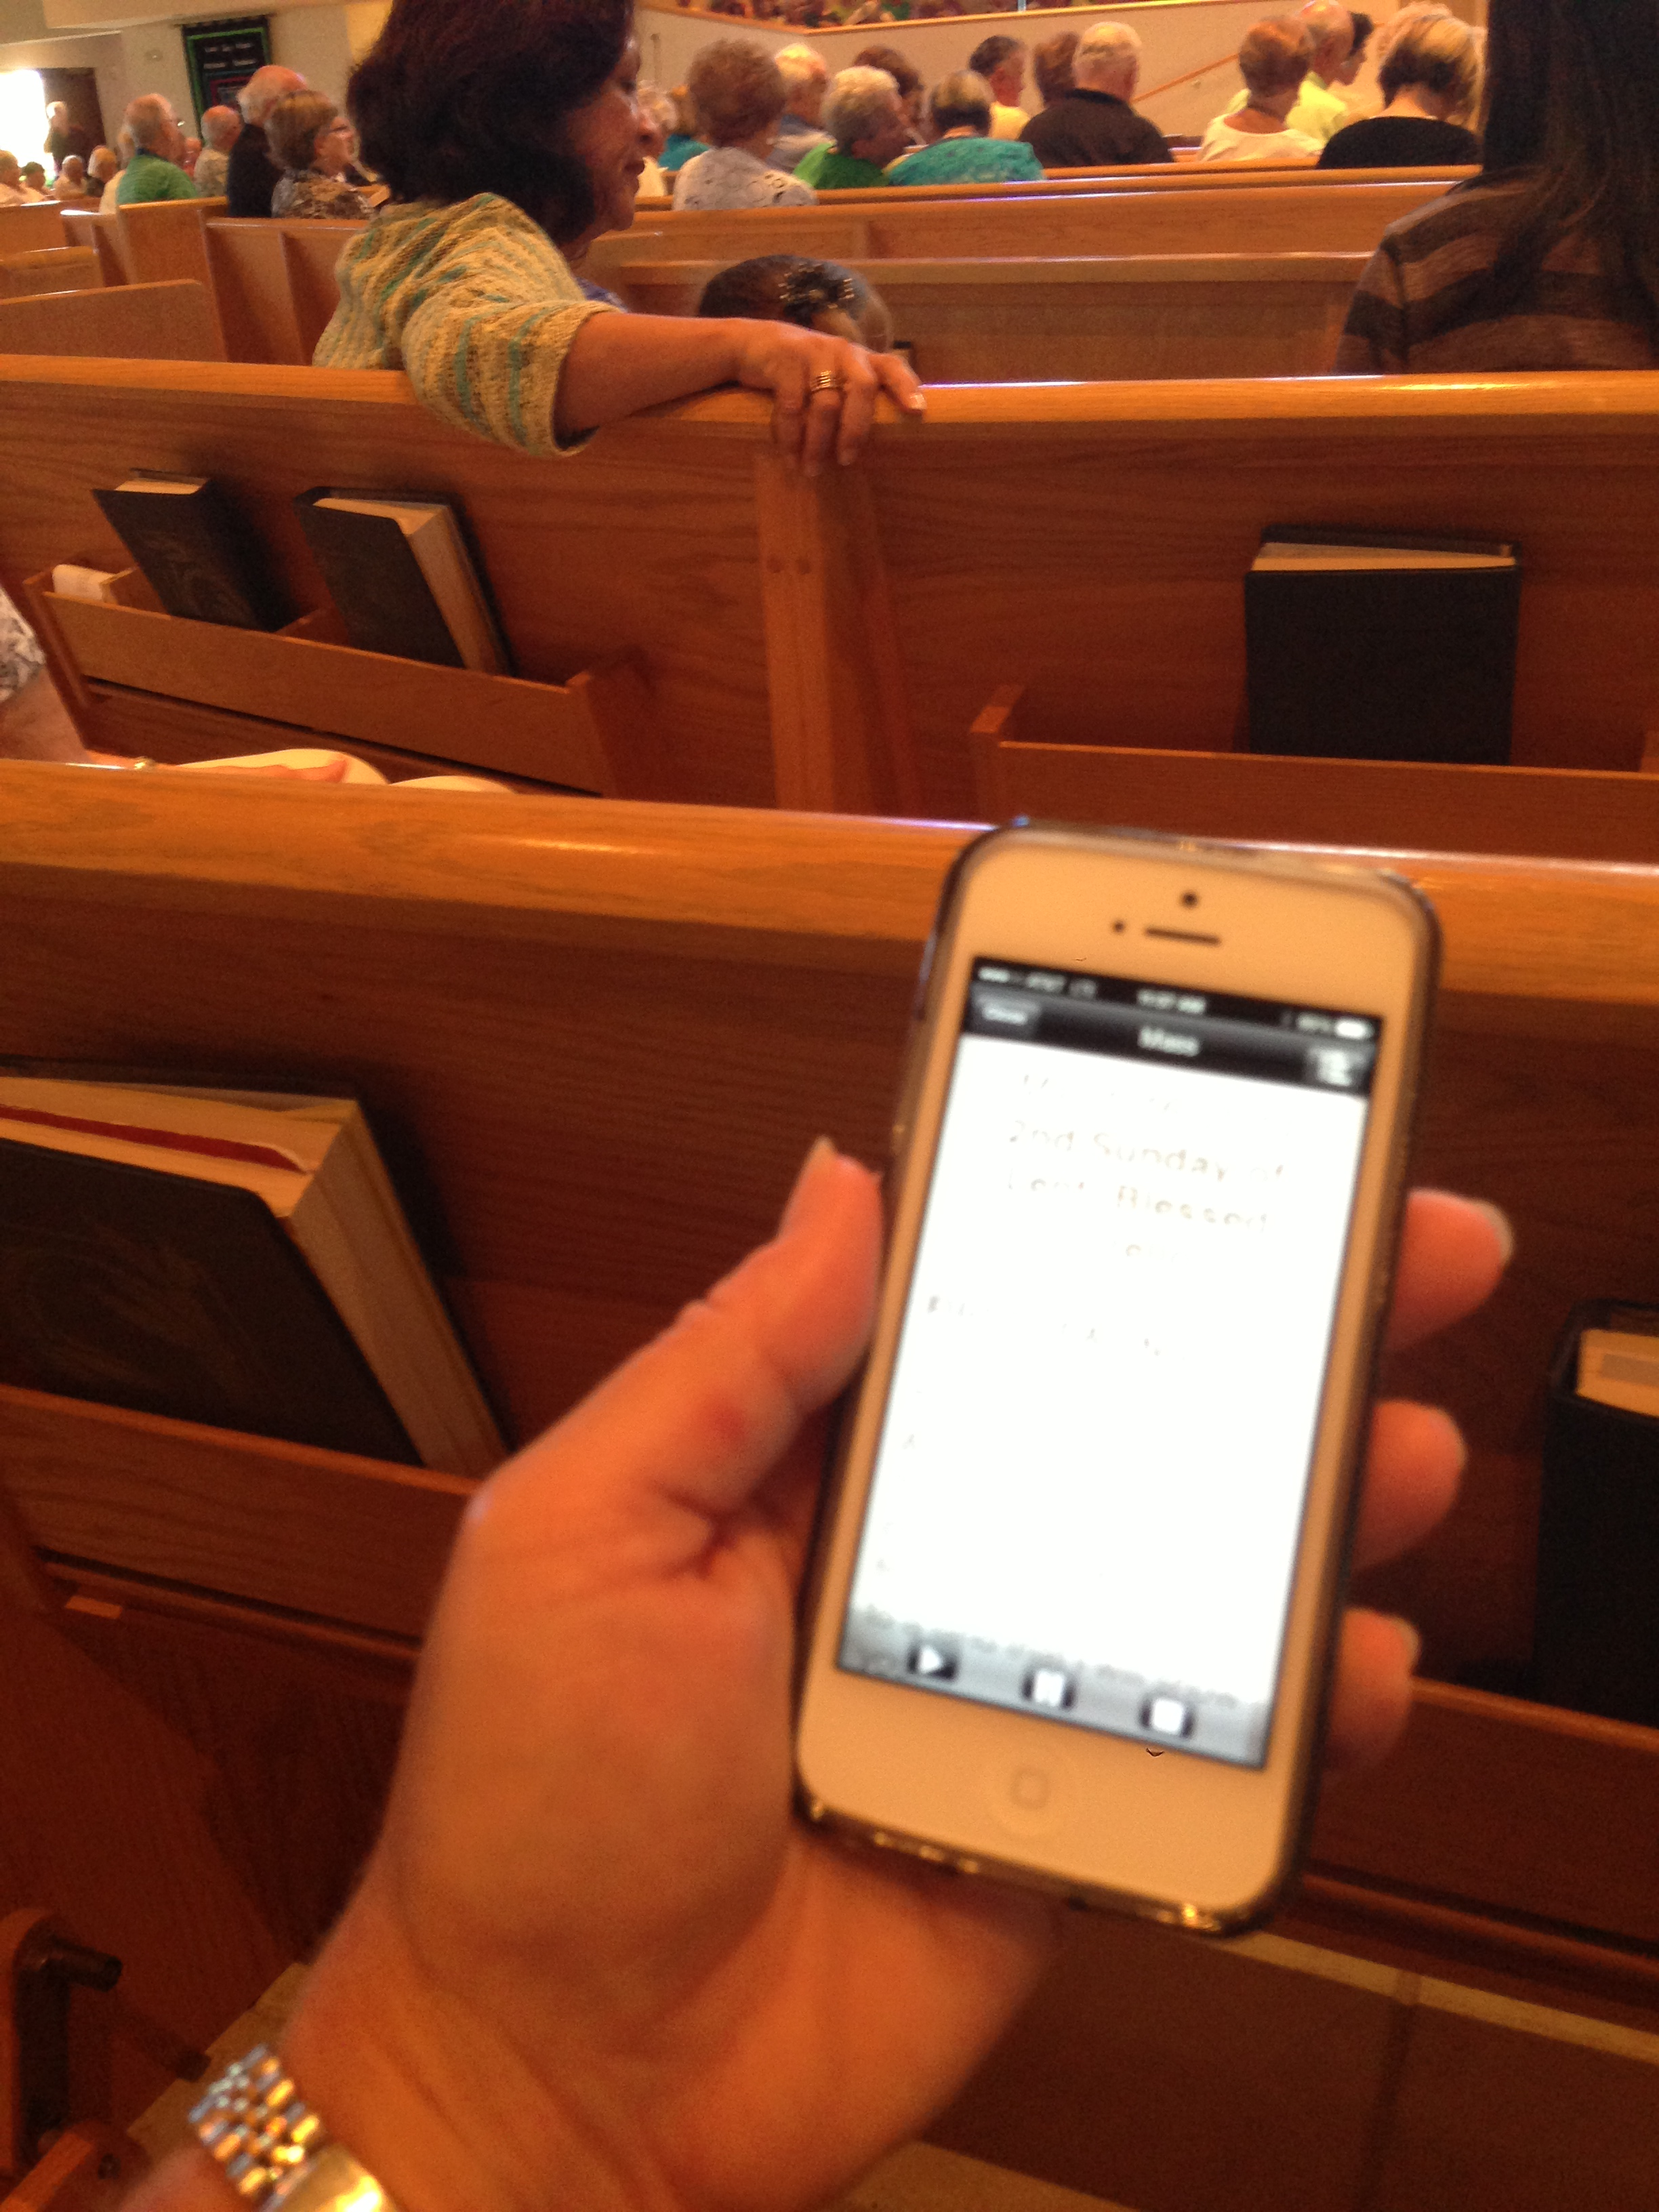 Catholic Apptitude | A testament to digital ministry | The